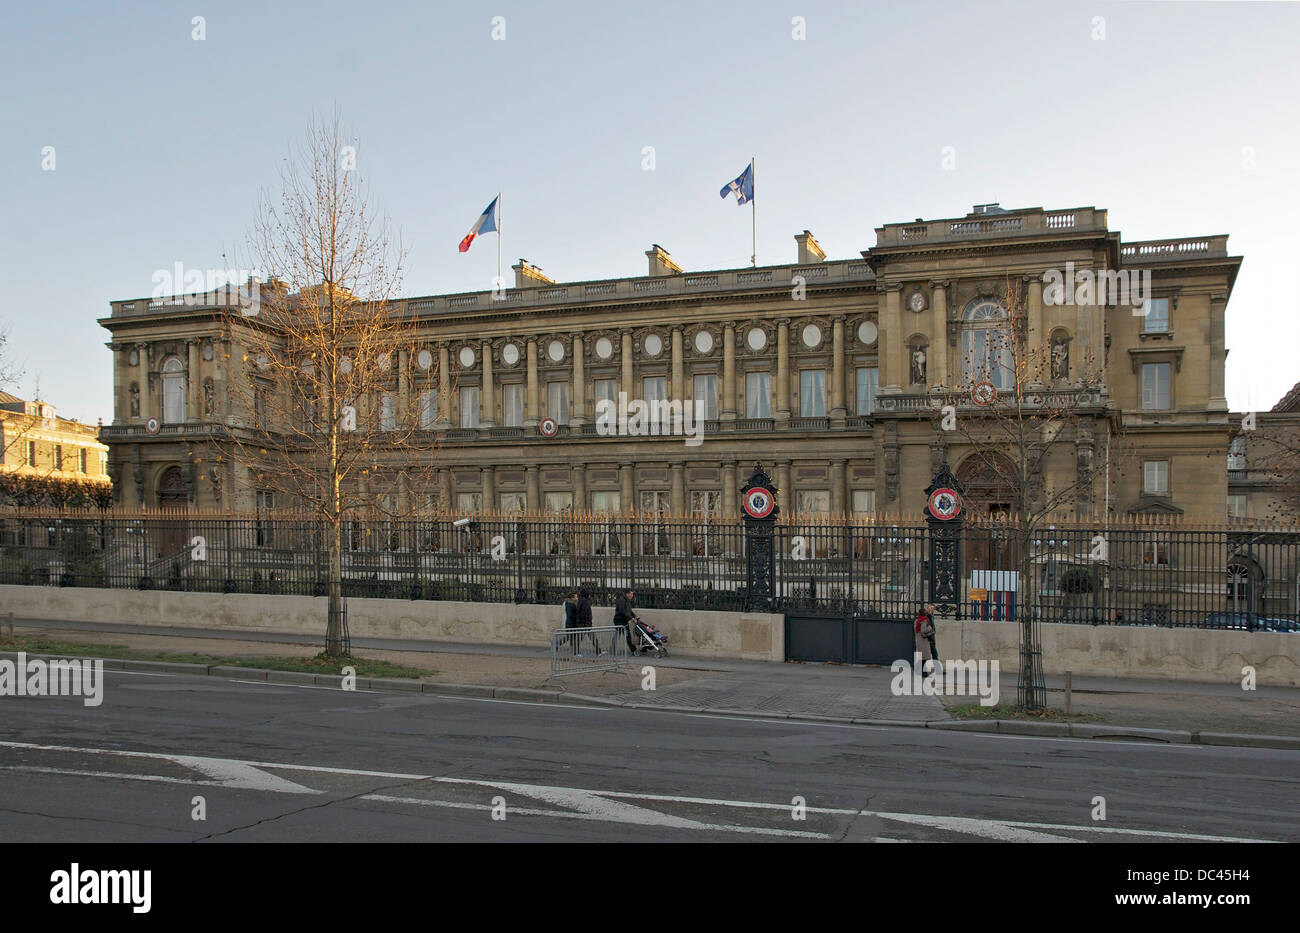 french Ministry of Foreign and European Affairs, facade quai d'Orsay, Paris. - Stock Image